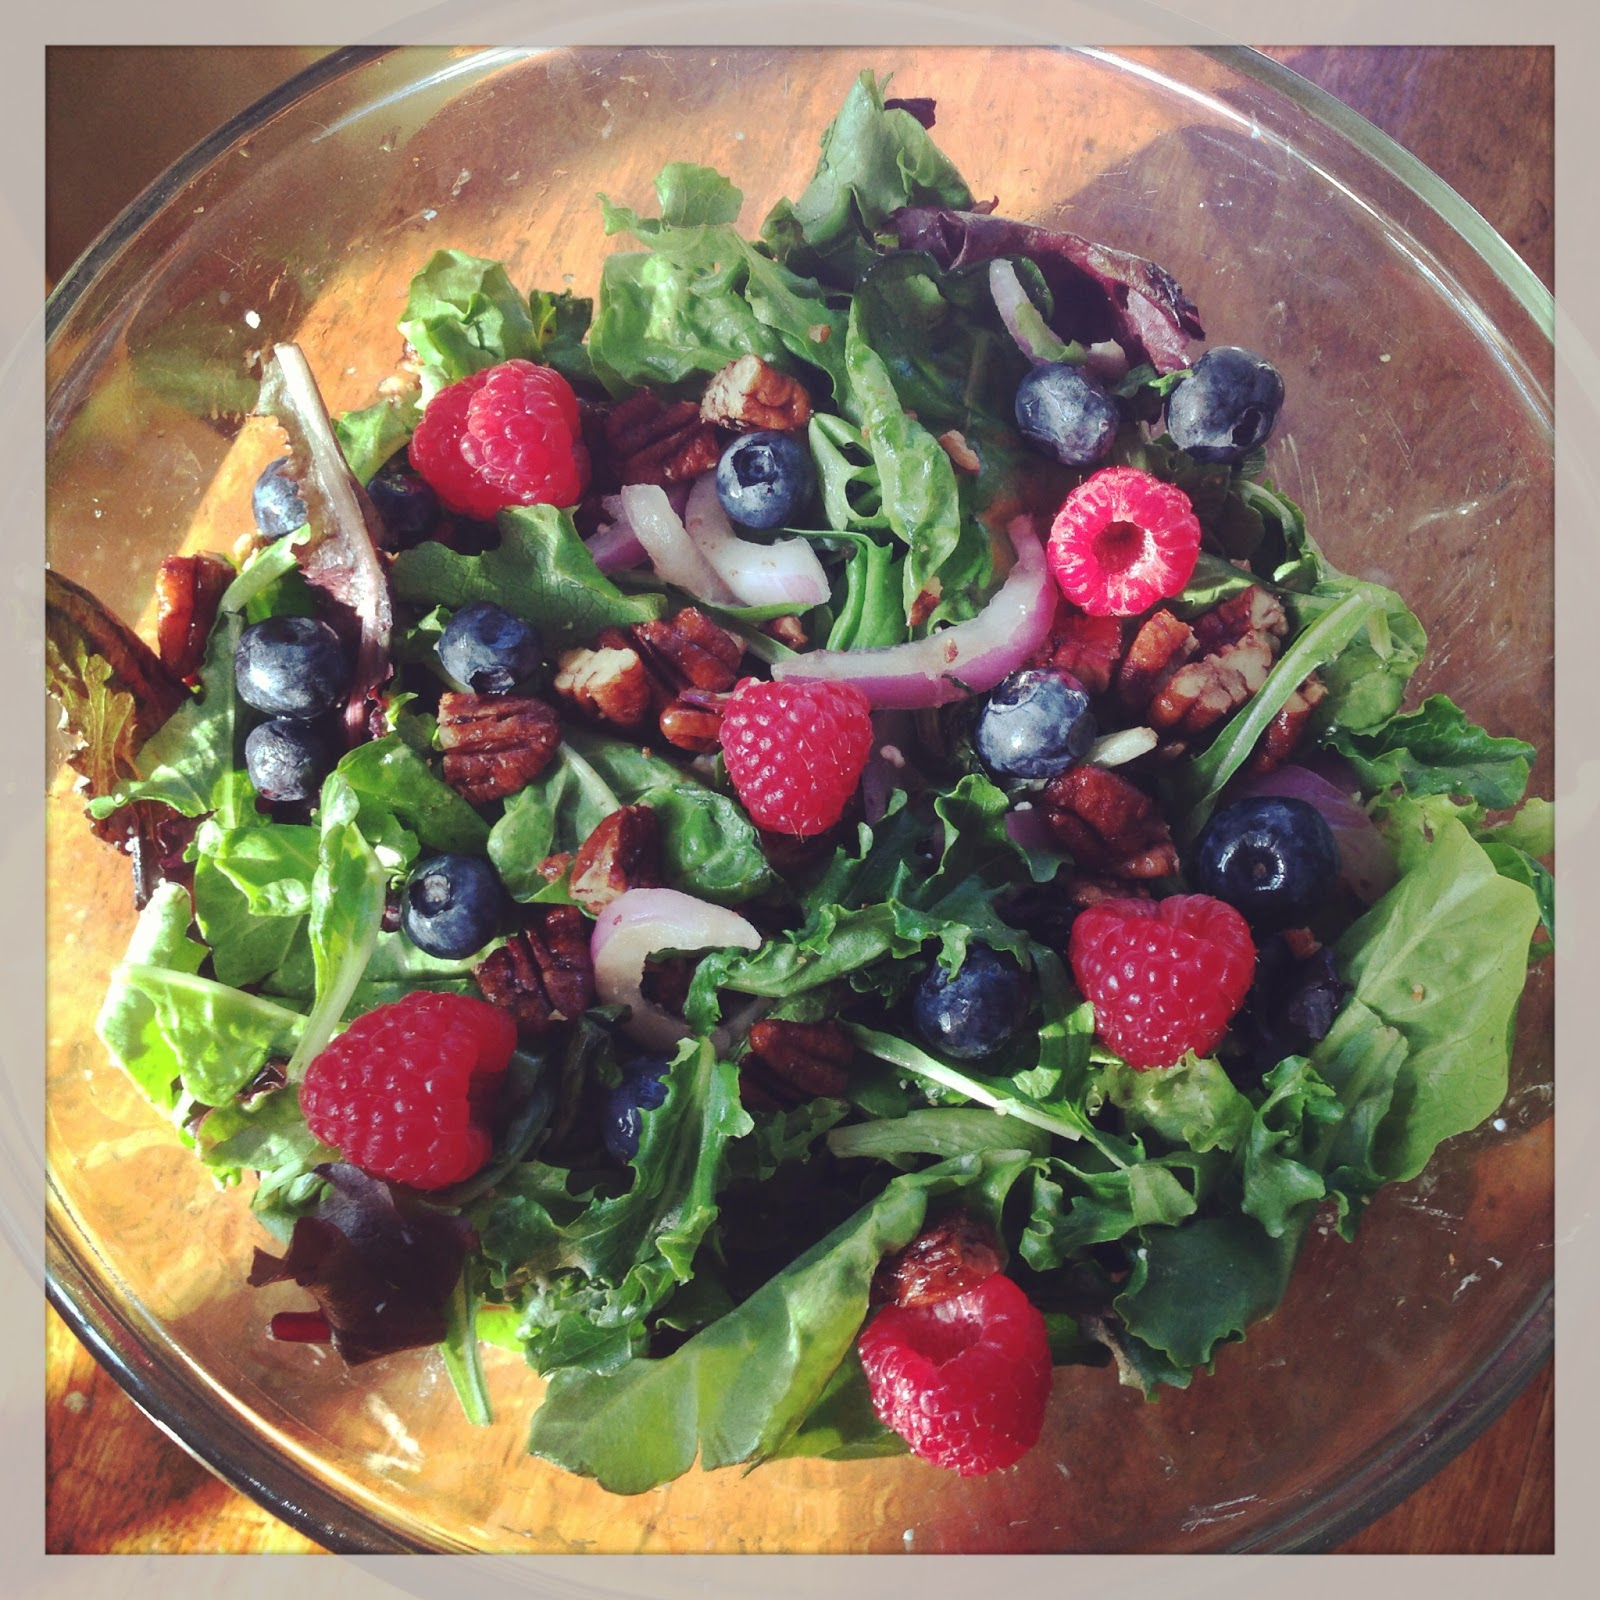 Mixed Greens Salad With Fresh Fruit and Candied Pecans